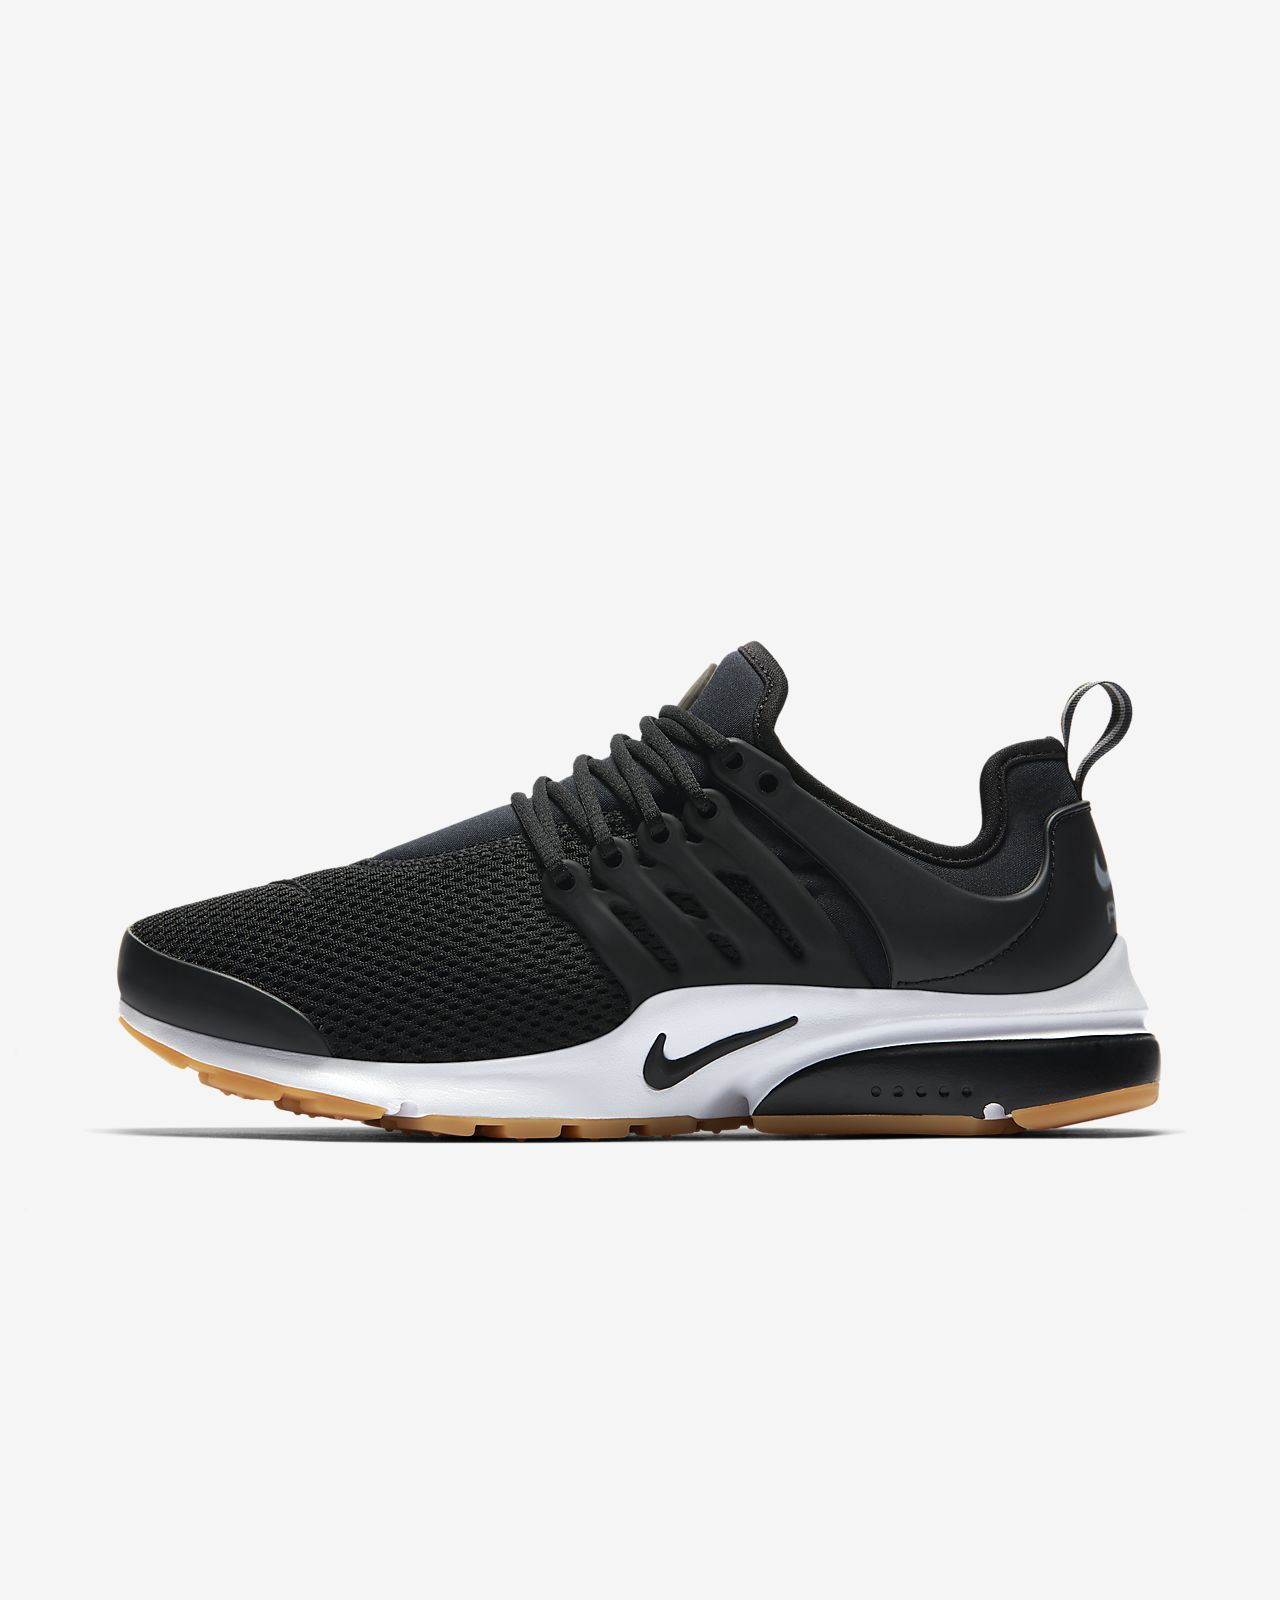 65cbb773a19 Nike Air Presto Women s Shoe. Nike.com